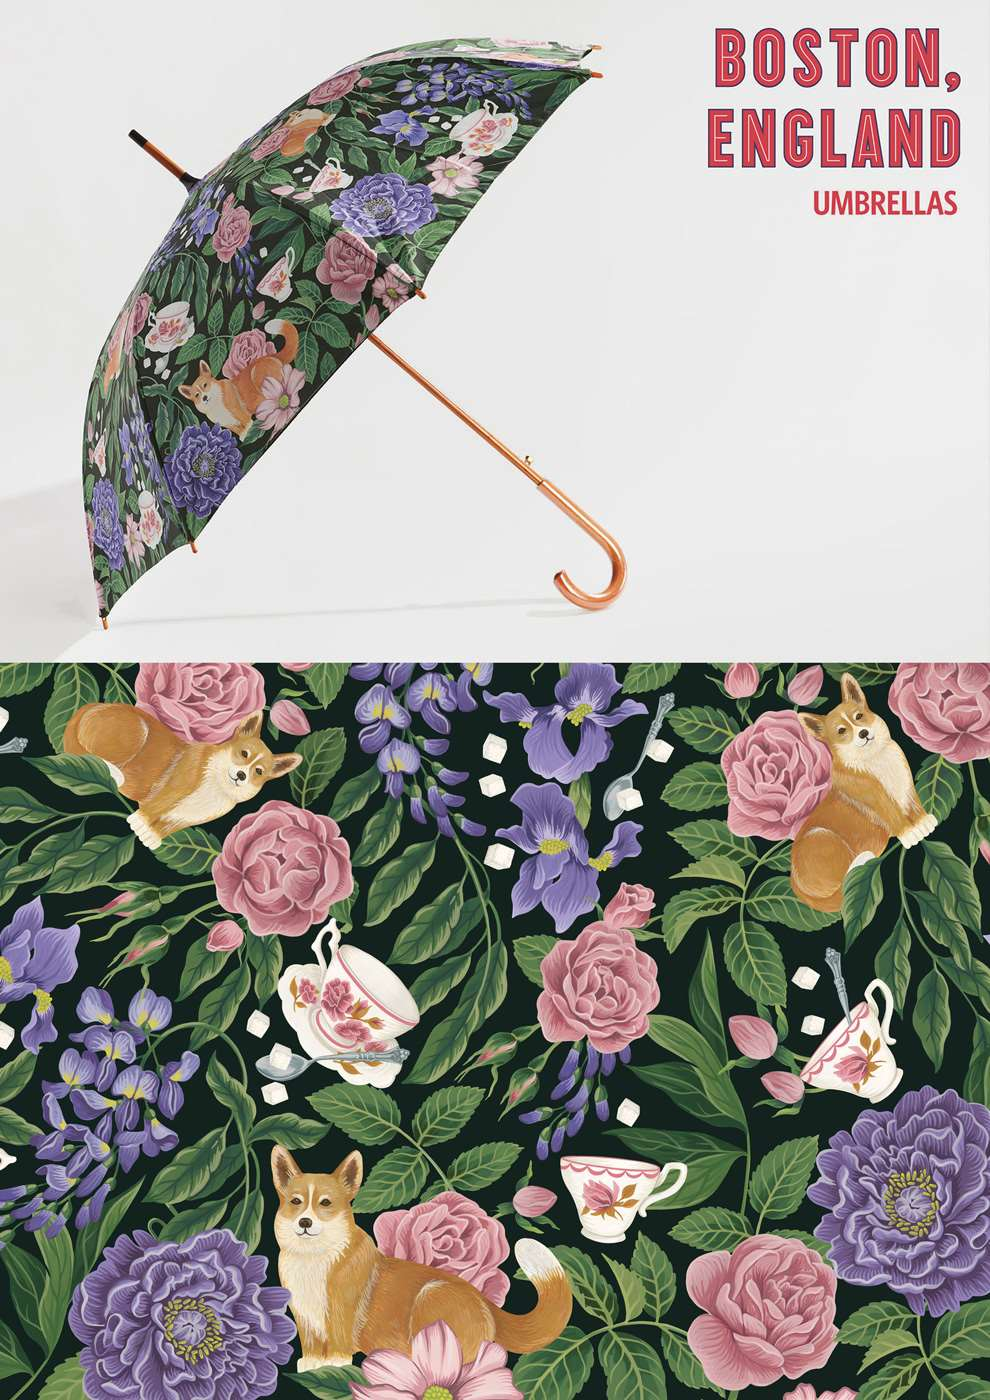 Charlotte Day, Floral umbrella pattern design. Pink and purple colour palette.